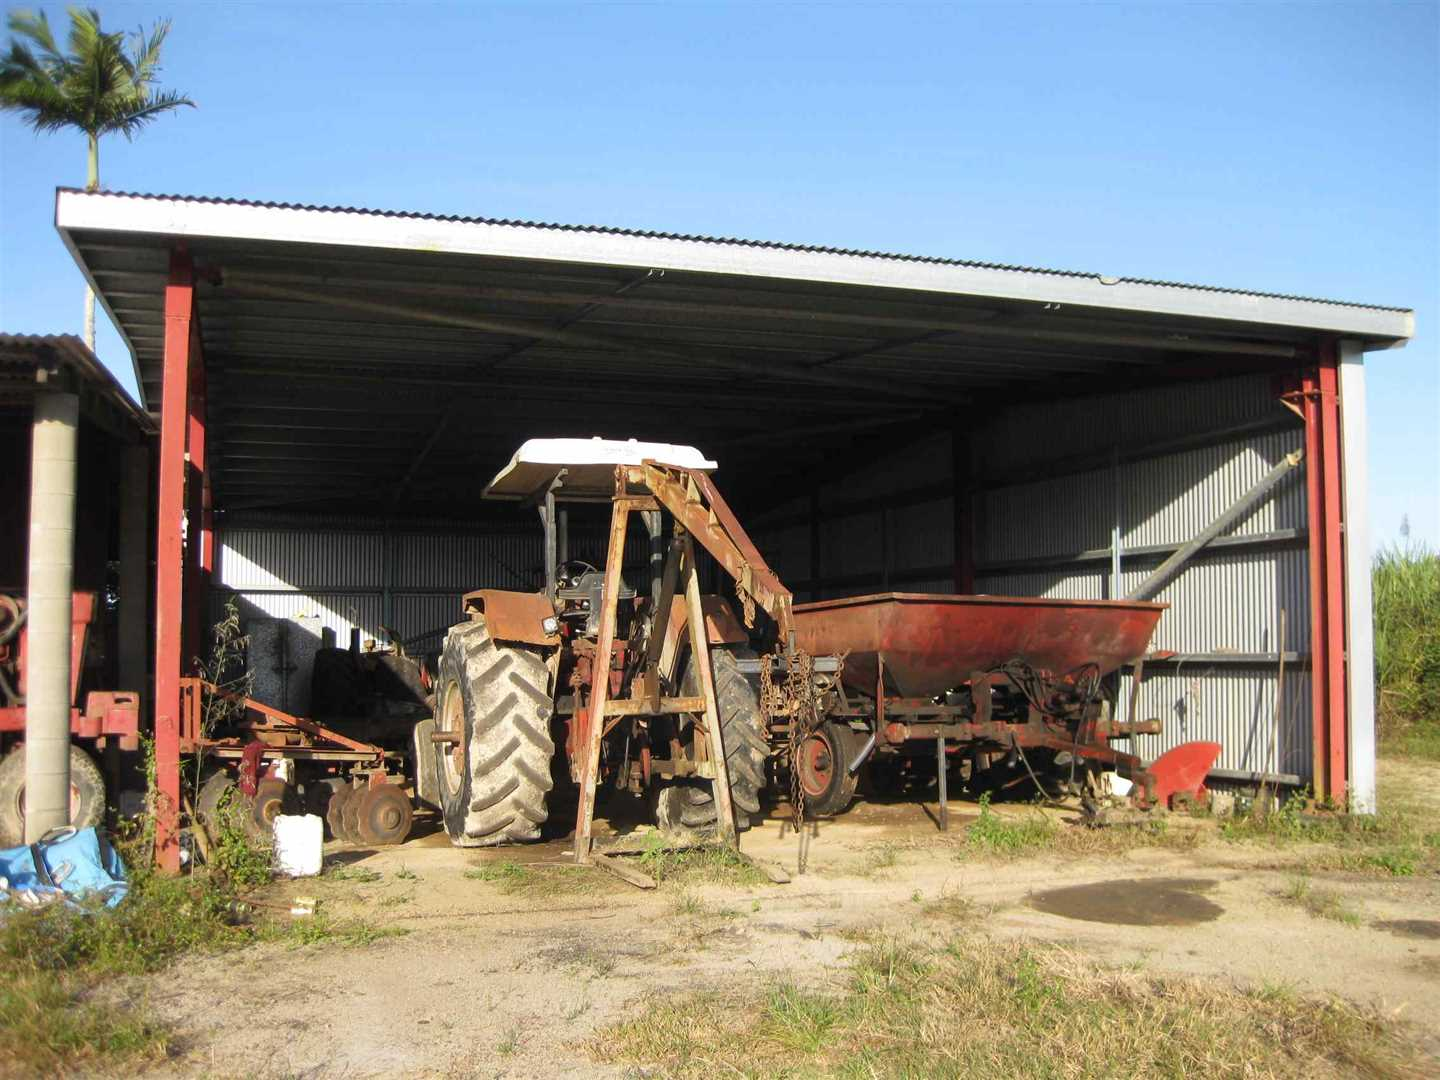 View of part of sheds, photo 1